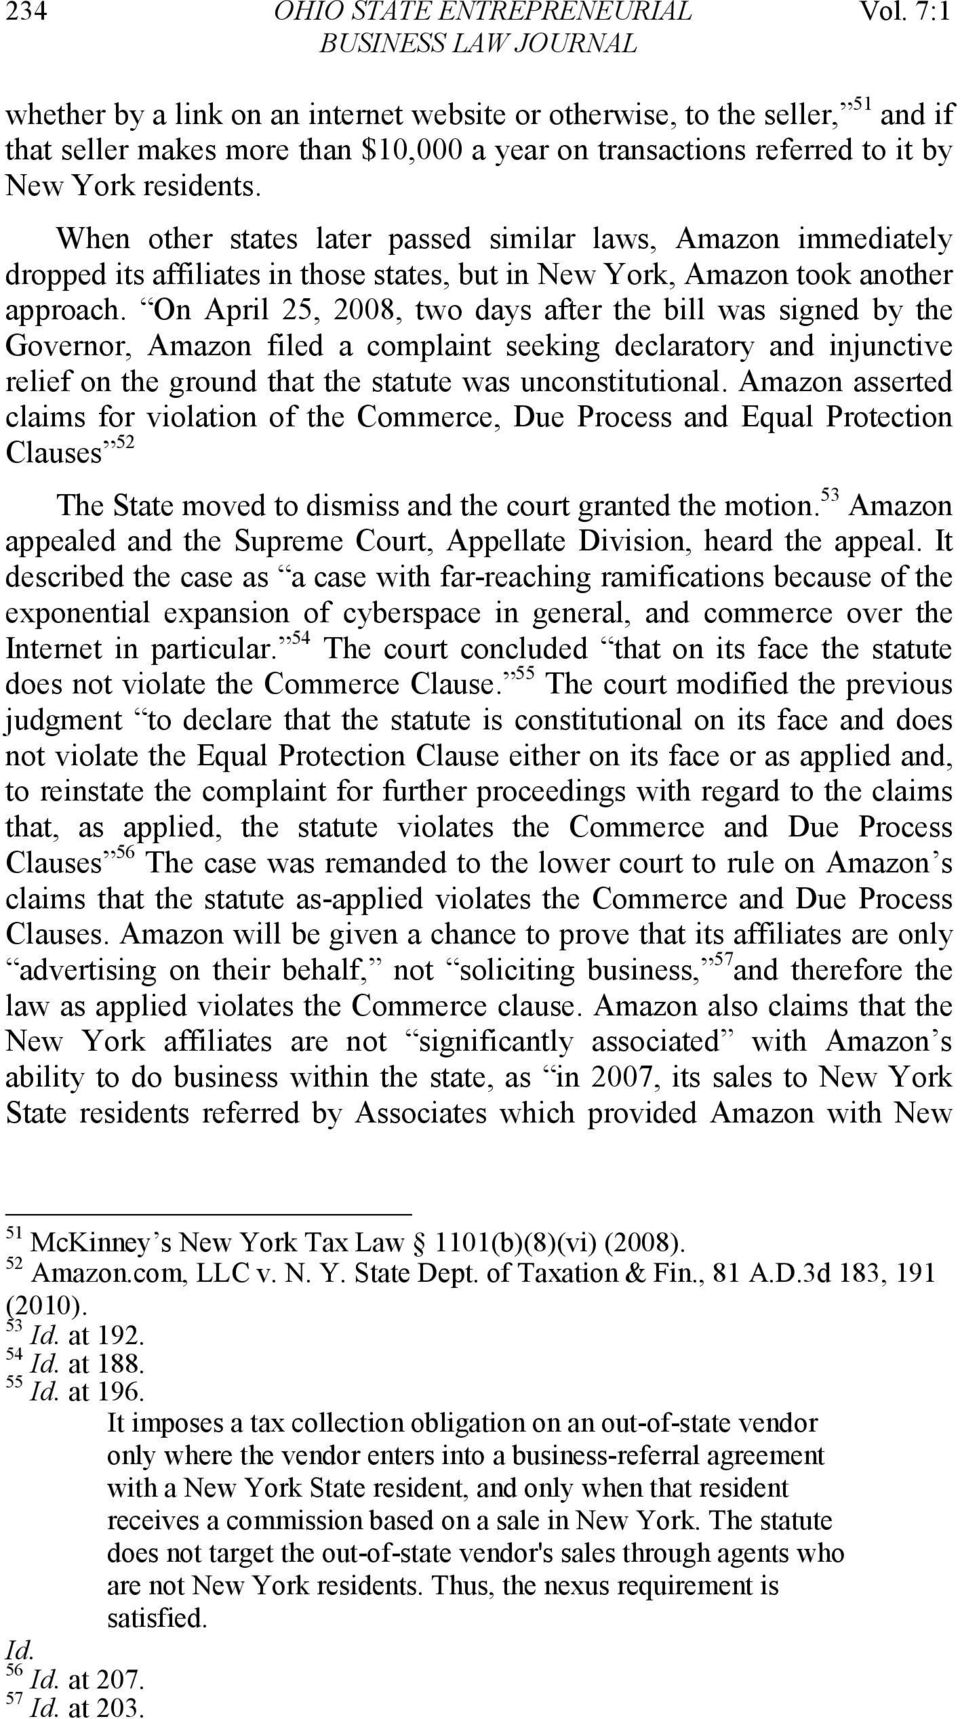 residents. When other states later passed similar laws, Amazon immediately dropped its affiliates in those states, but in New York, Amazon took another approach.